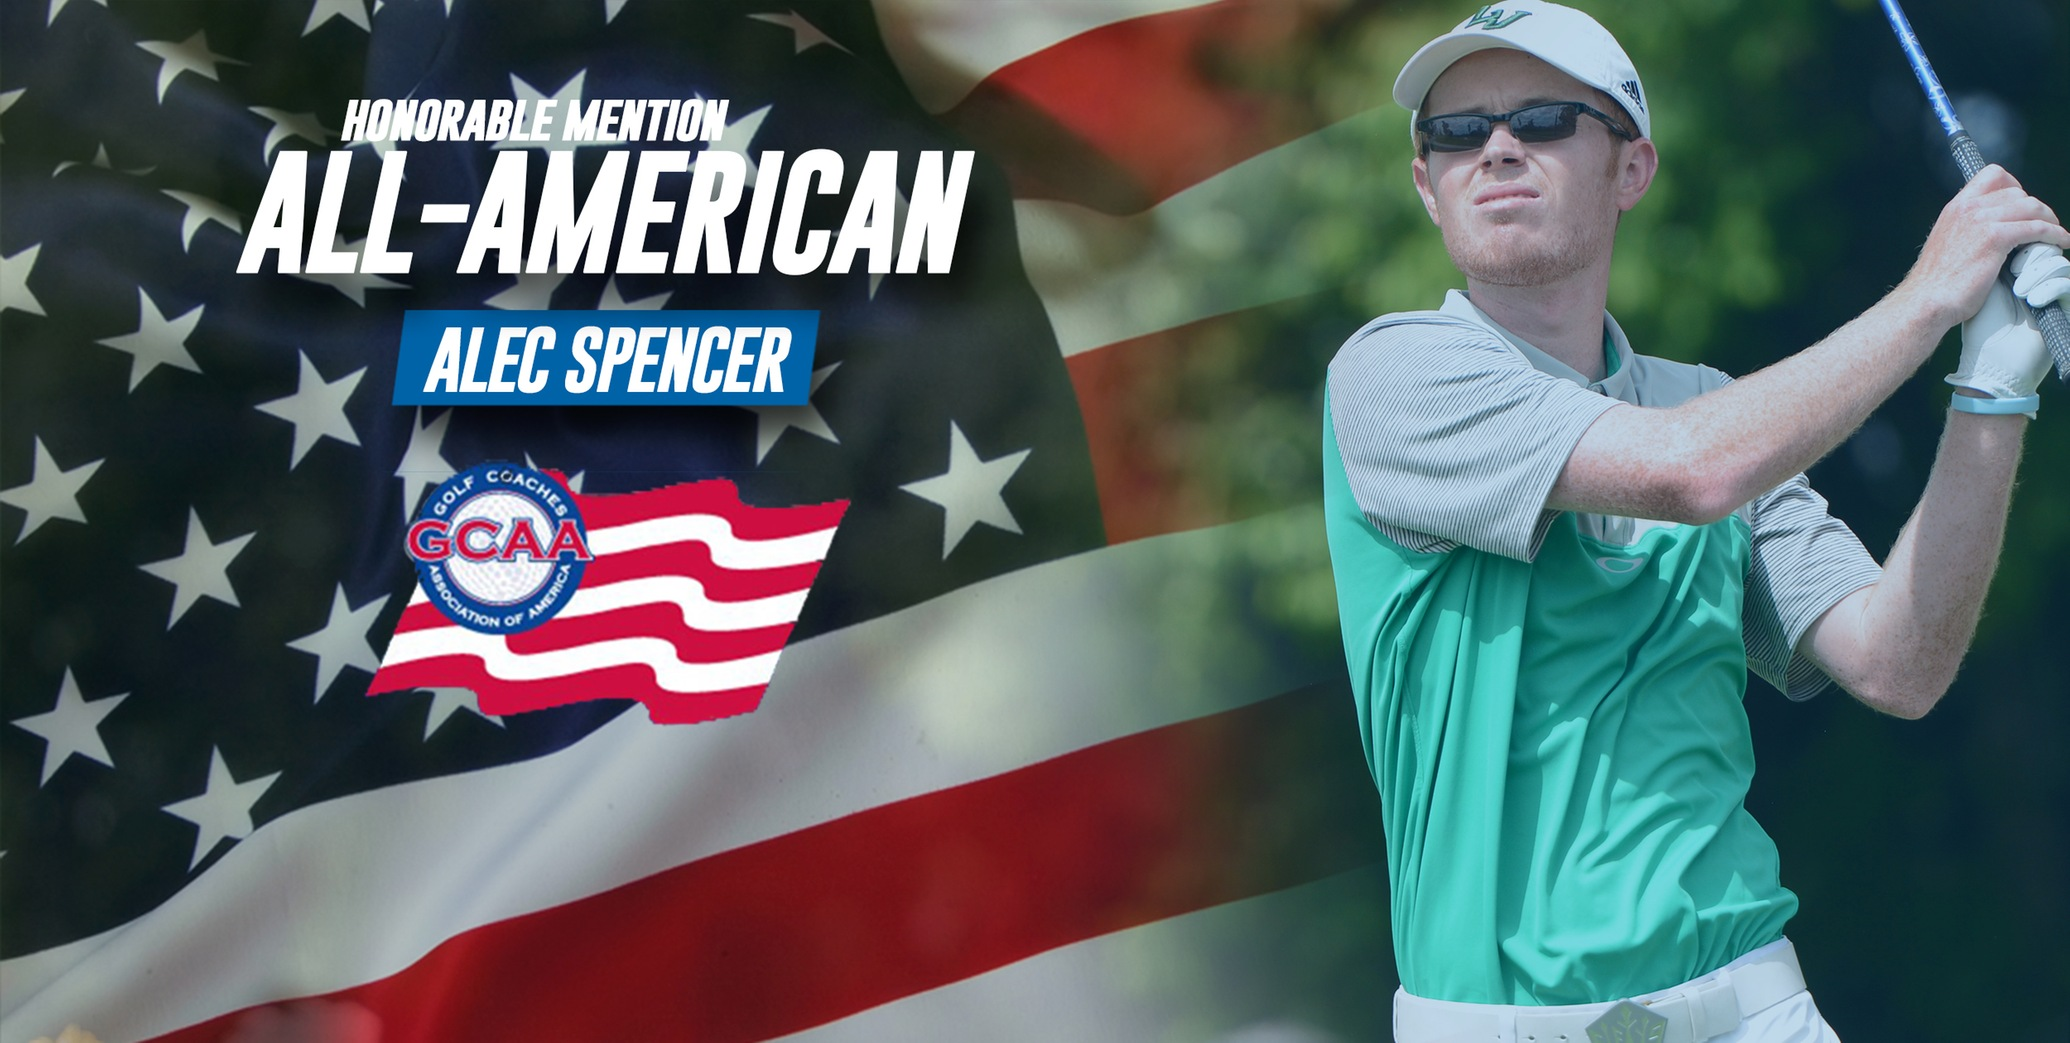 Alec Spencer tabbed GCAA All-American